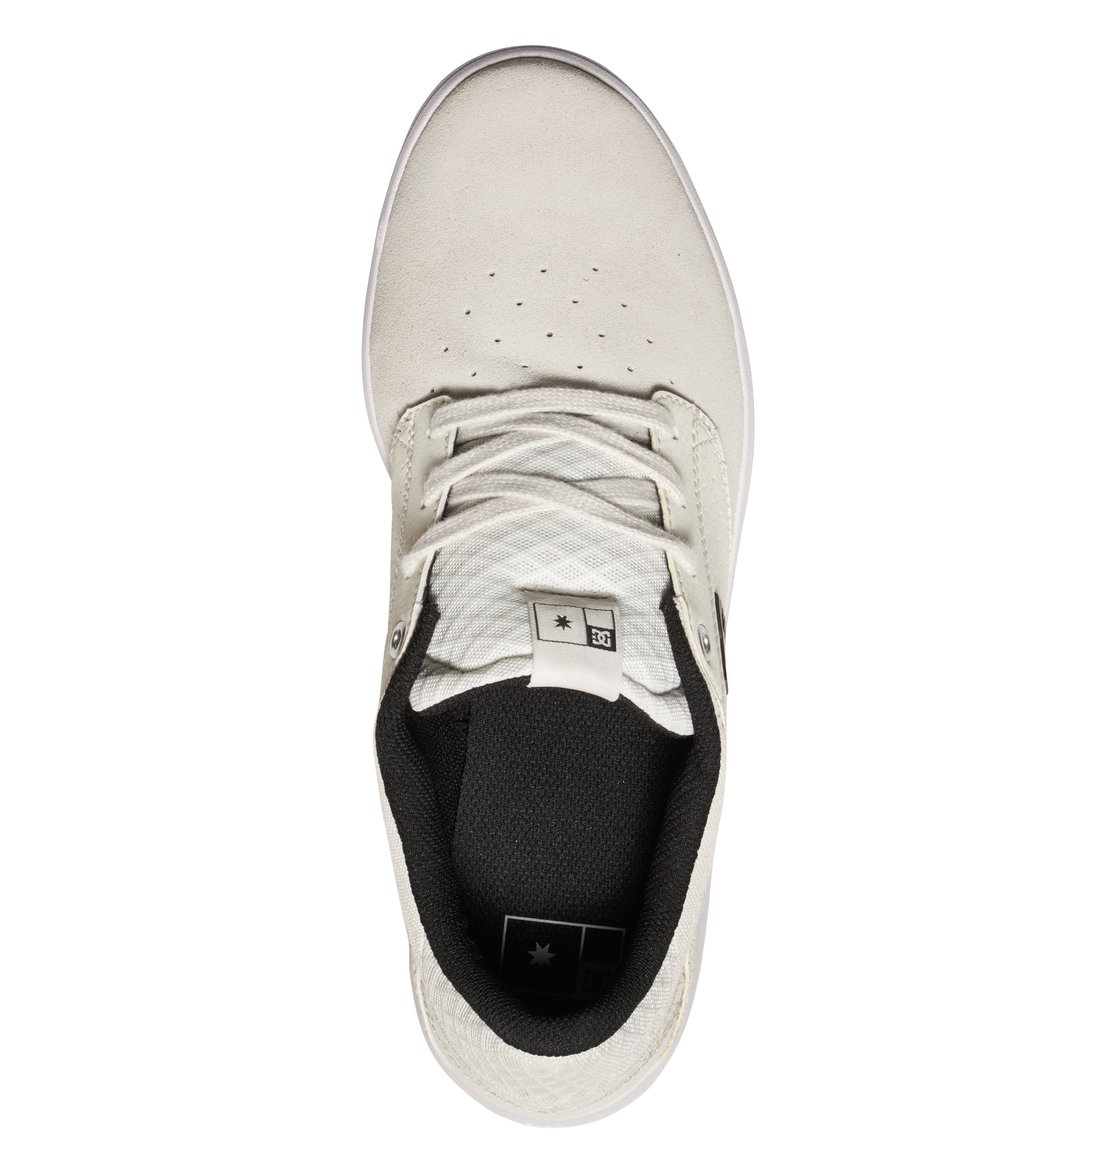 DC Shoes™ Men s Plaza TC S Skate Shoes ADYS100319  63ac8c60feac3